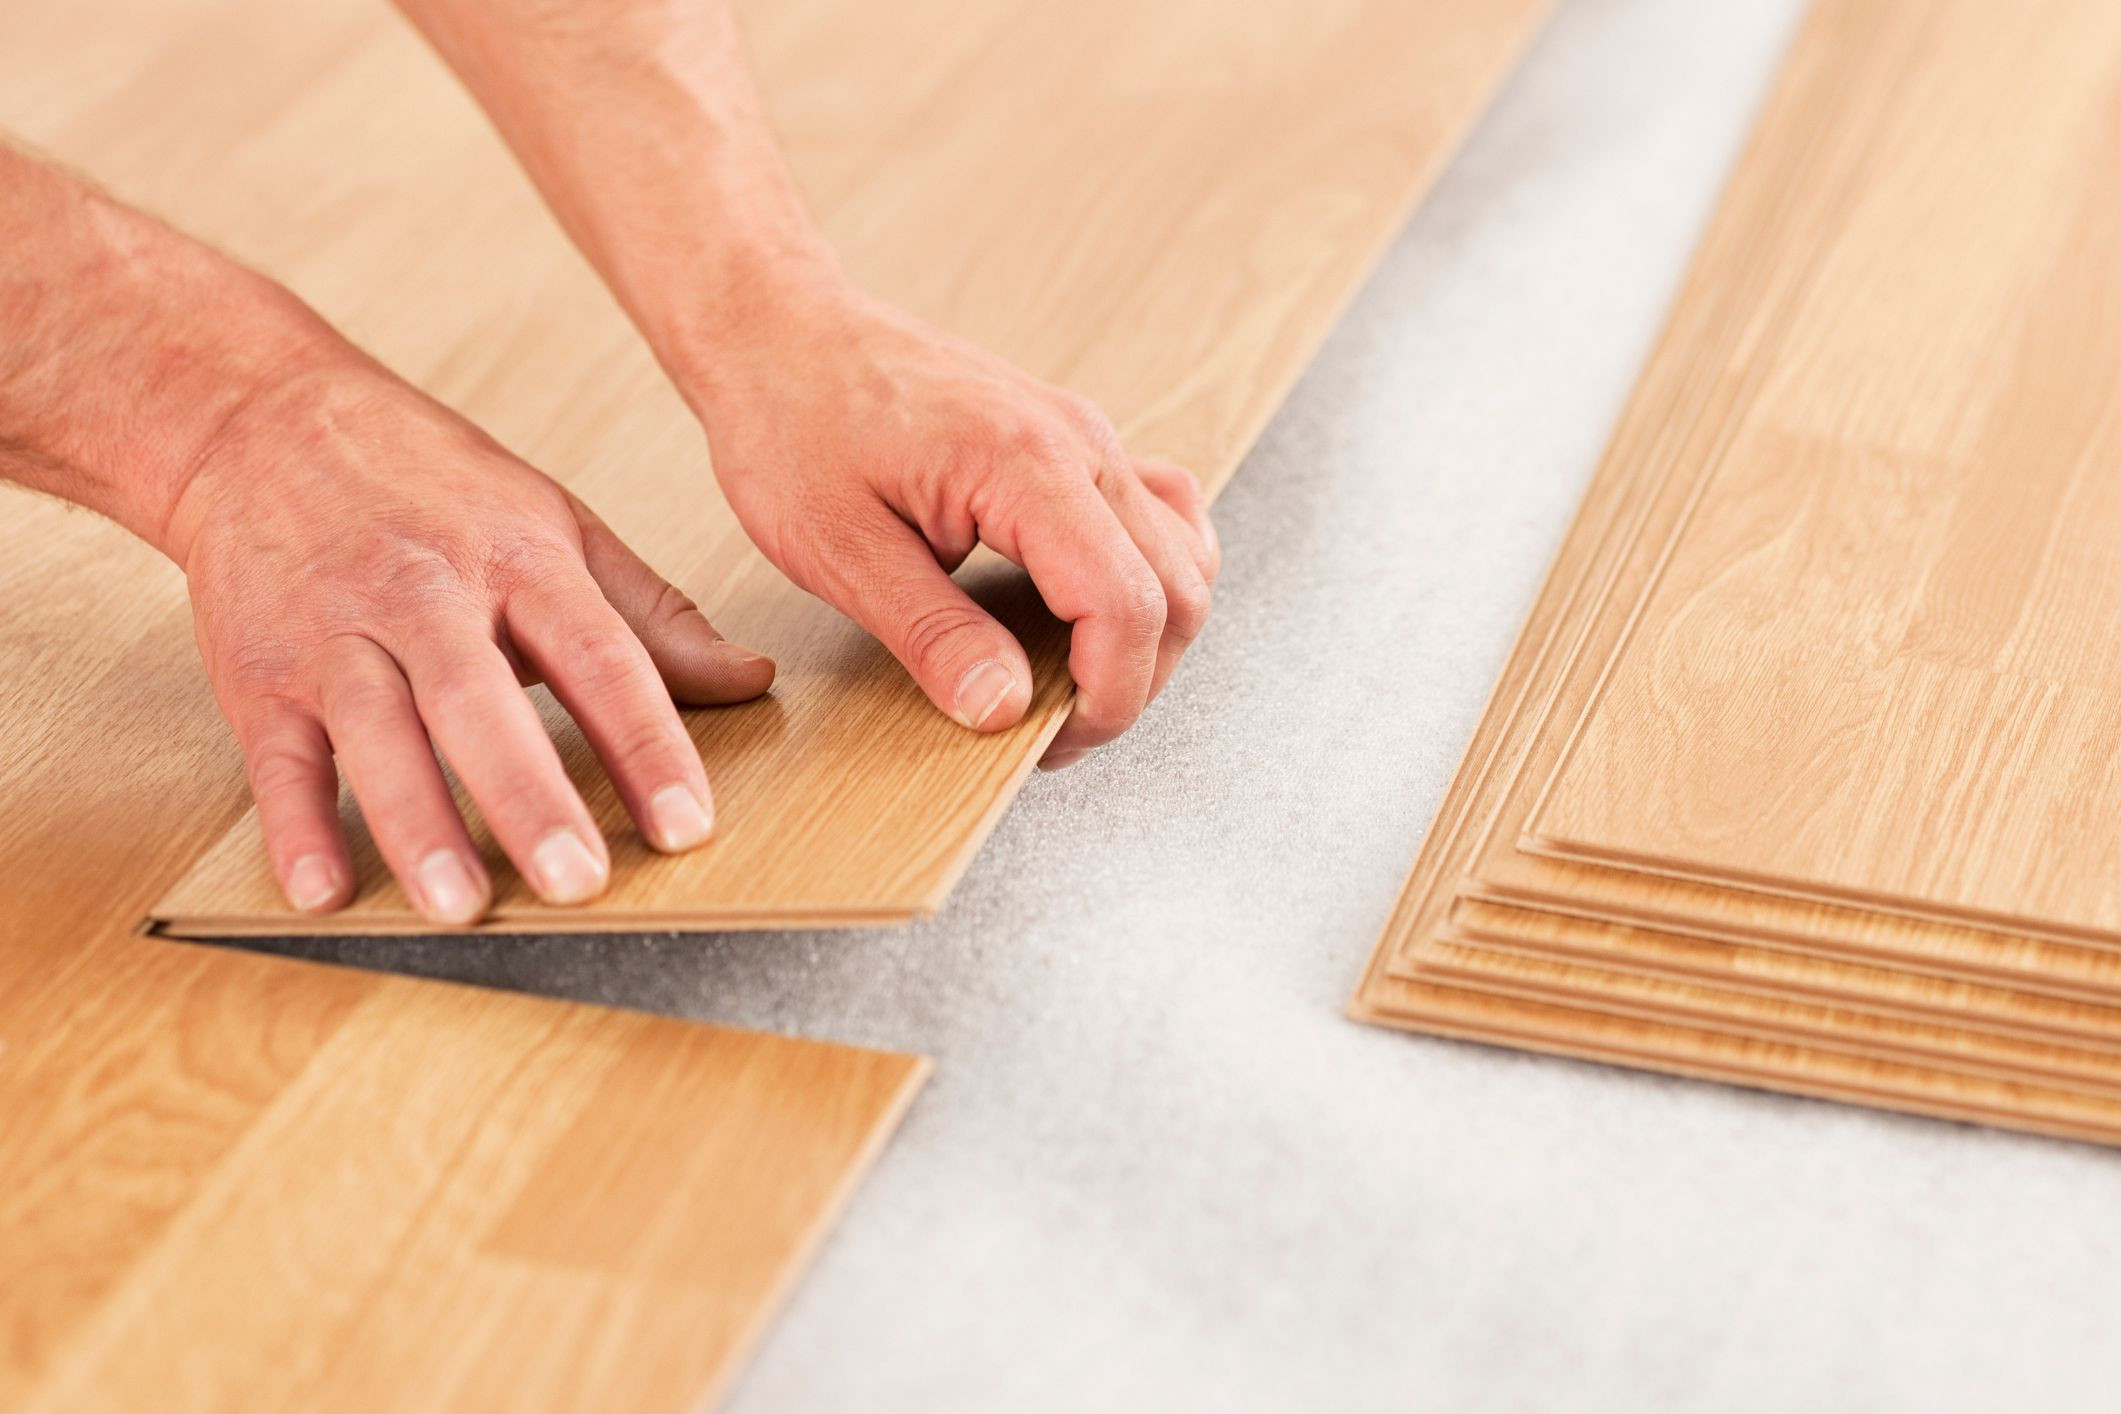 how much does fake hardwood floor cost of laminate underlayment pros and cons for laminate floor install gettyimages 154961561 588816495f9b58bdb3da1a02